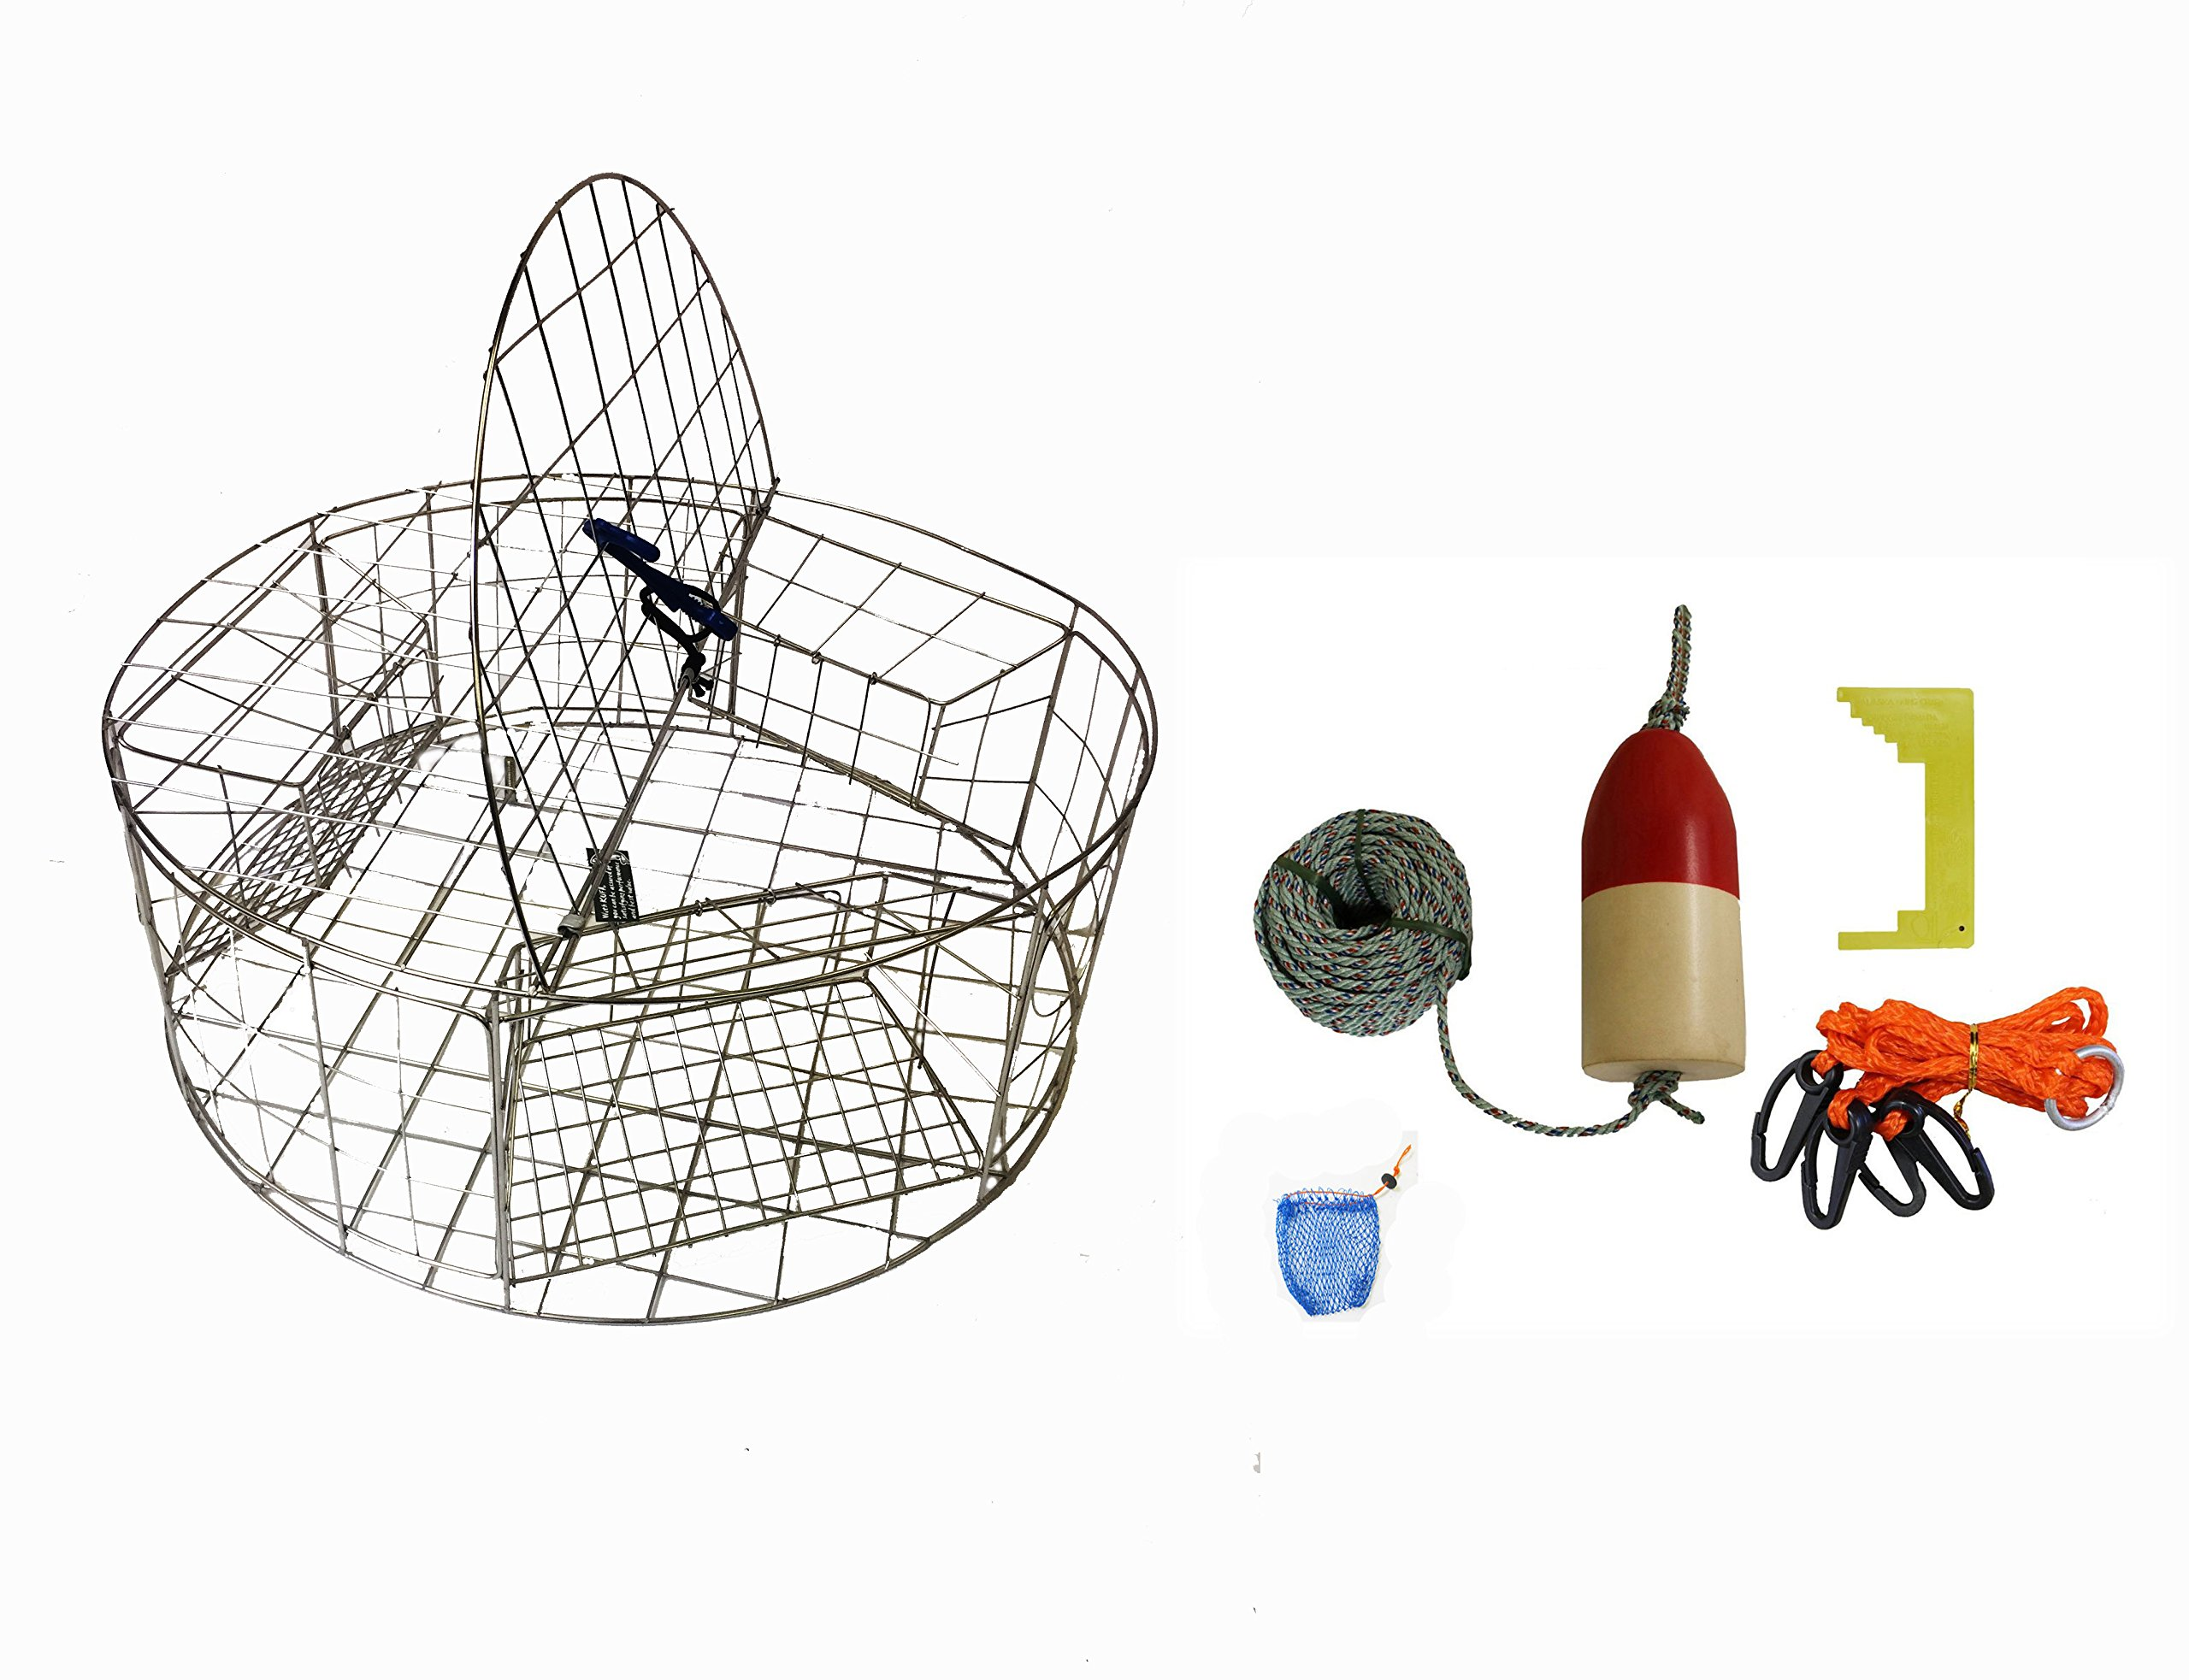 KUFA Stainless Steel Round Crab Trap with sacrificial anode Zinc & 1/4 x100' leaded rope,14'' Red/White float,Harness,Caliper,Bait Bag Combo (CT120+CAQ3+ZIN1)